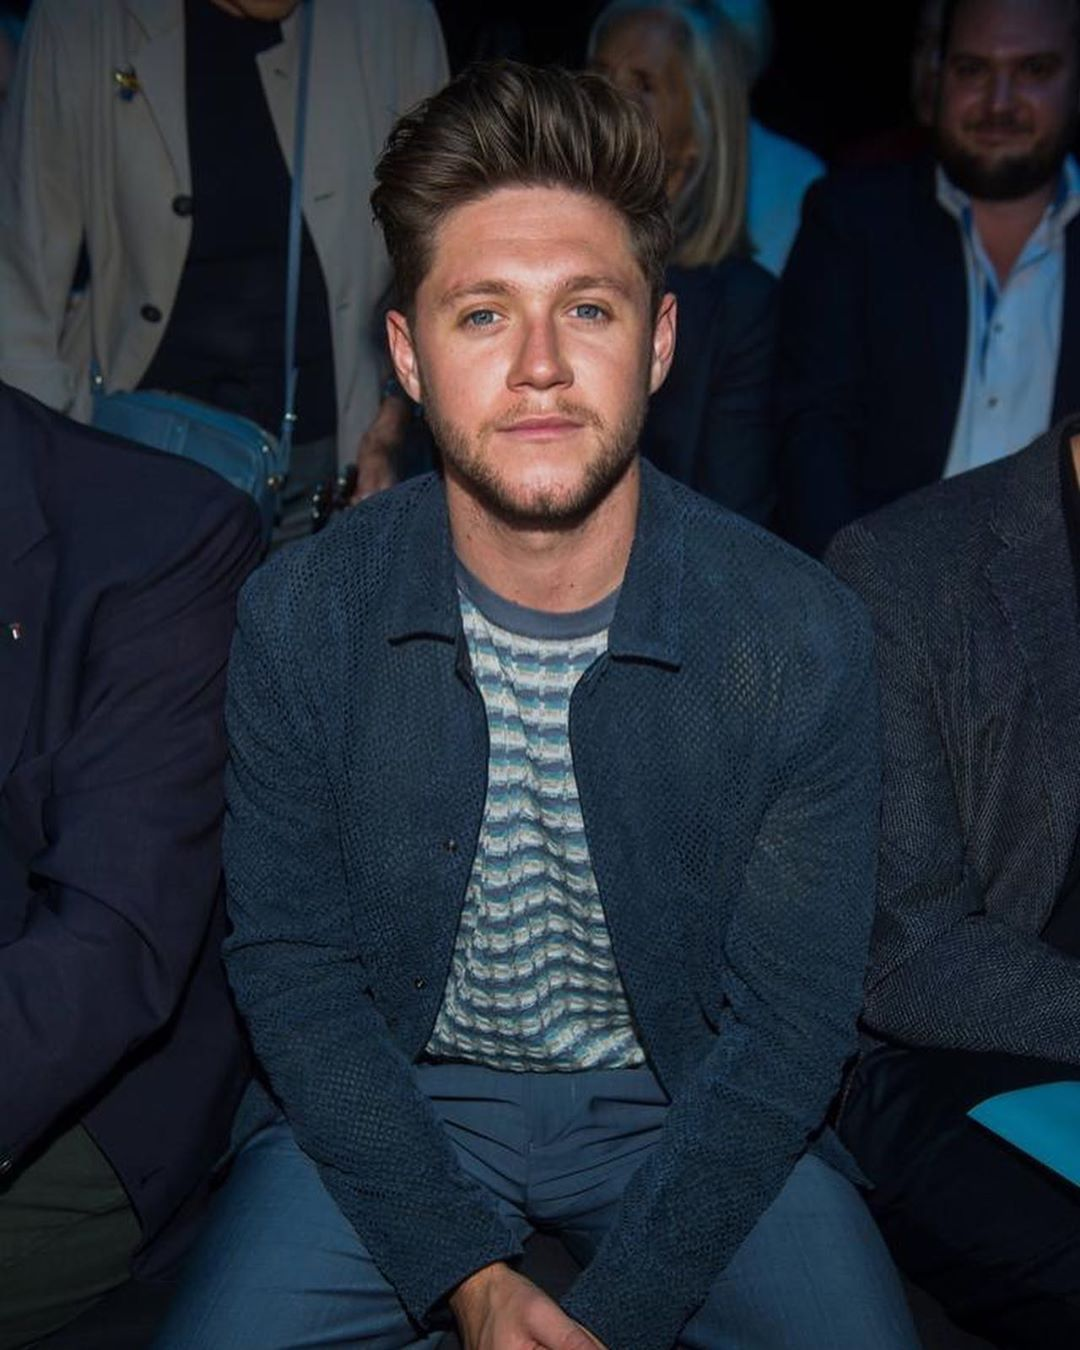 Image may contain: reality TV rich list, UK, reality TV, net worth, earnings, money, salary, rich, worth, Niall Horan, One Direction, 1D, X Factor, Clothing, Apparel, Suit, Overcoat, Coat, Man, Person, Human